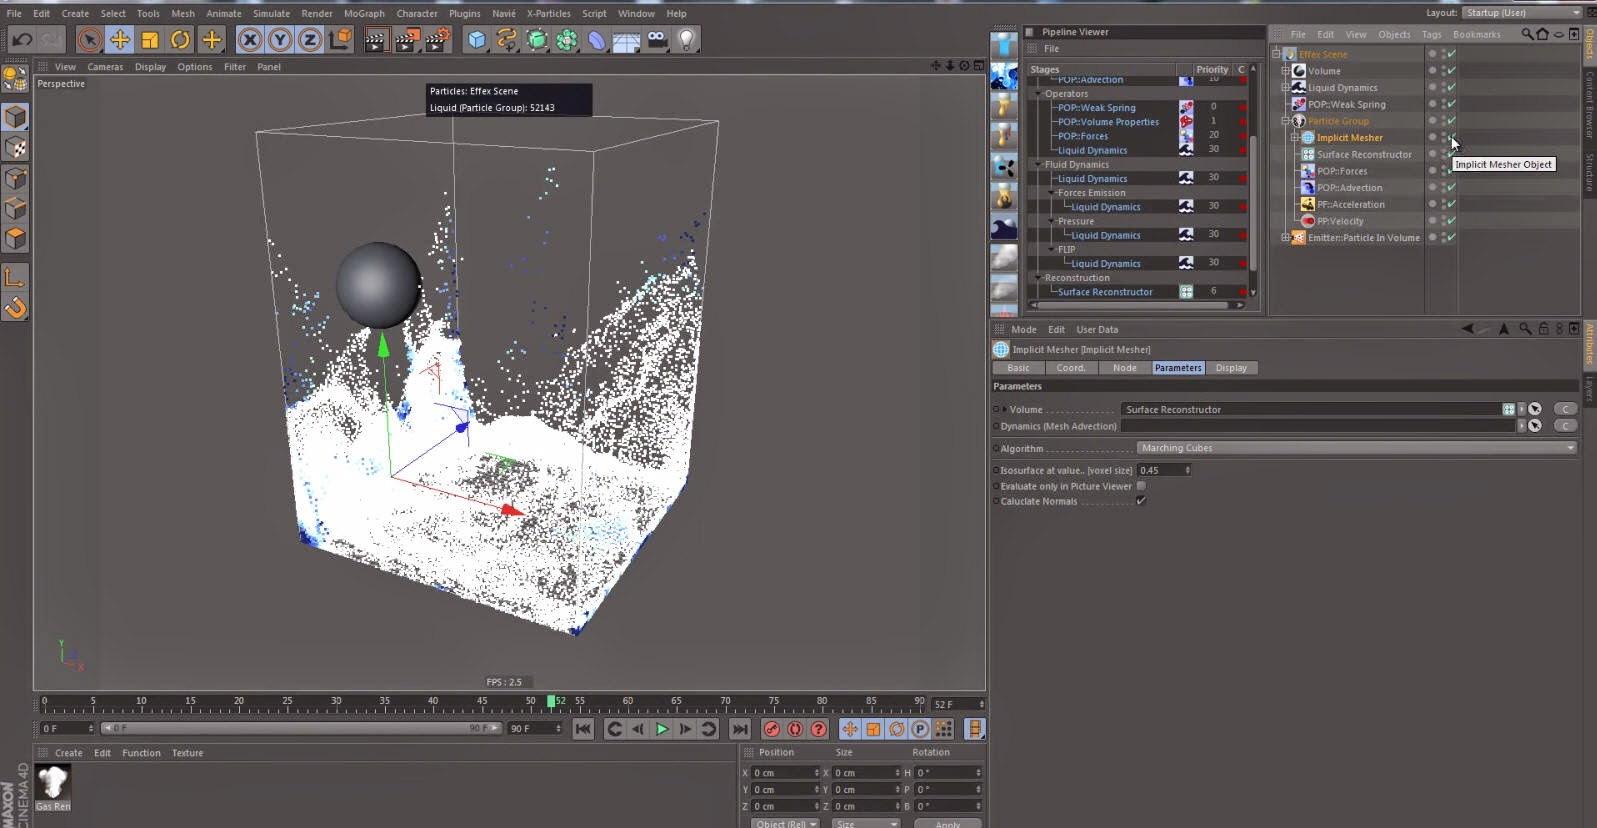 Plugin realflow cinema 4d r13